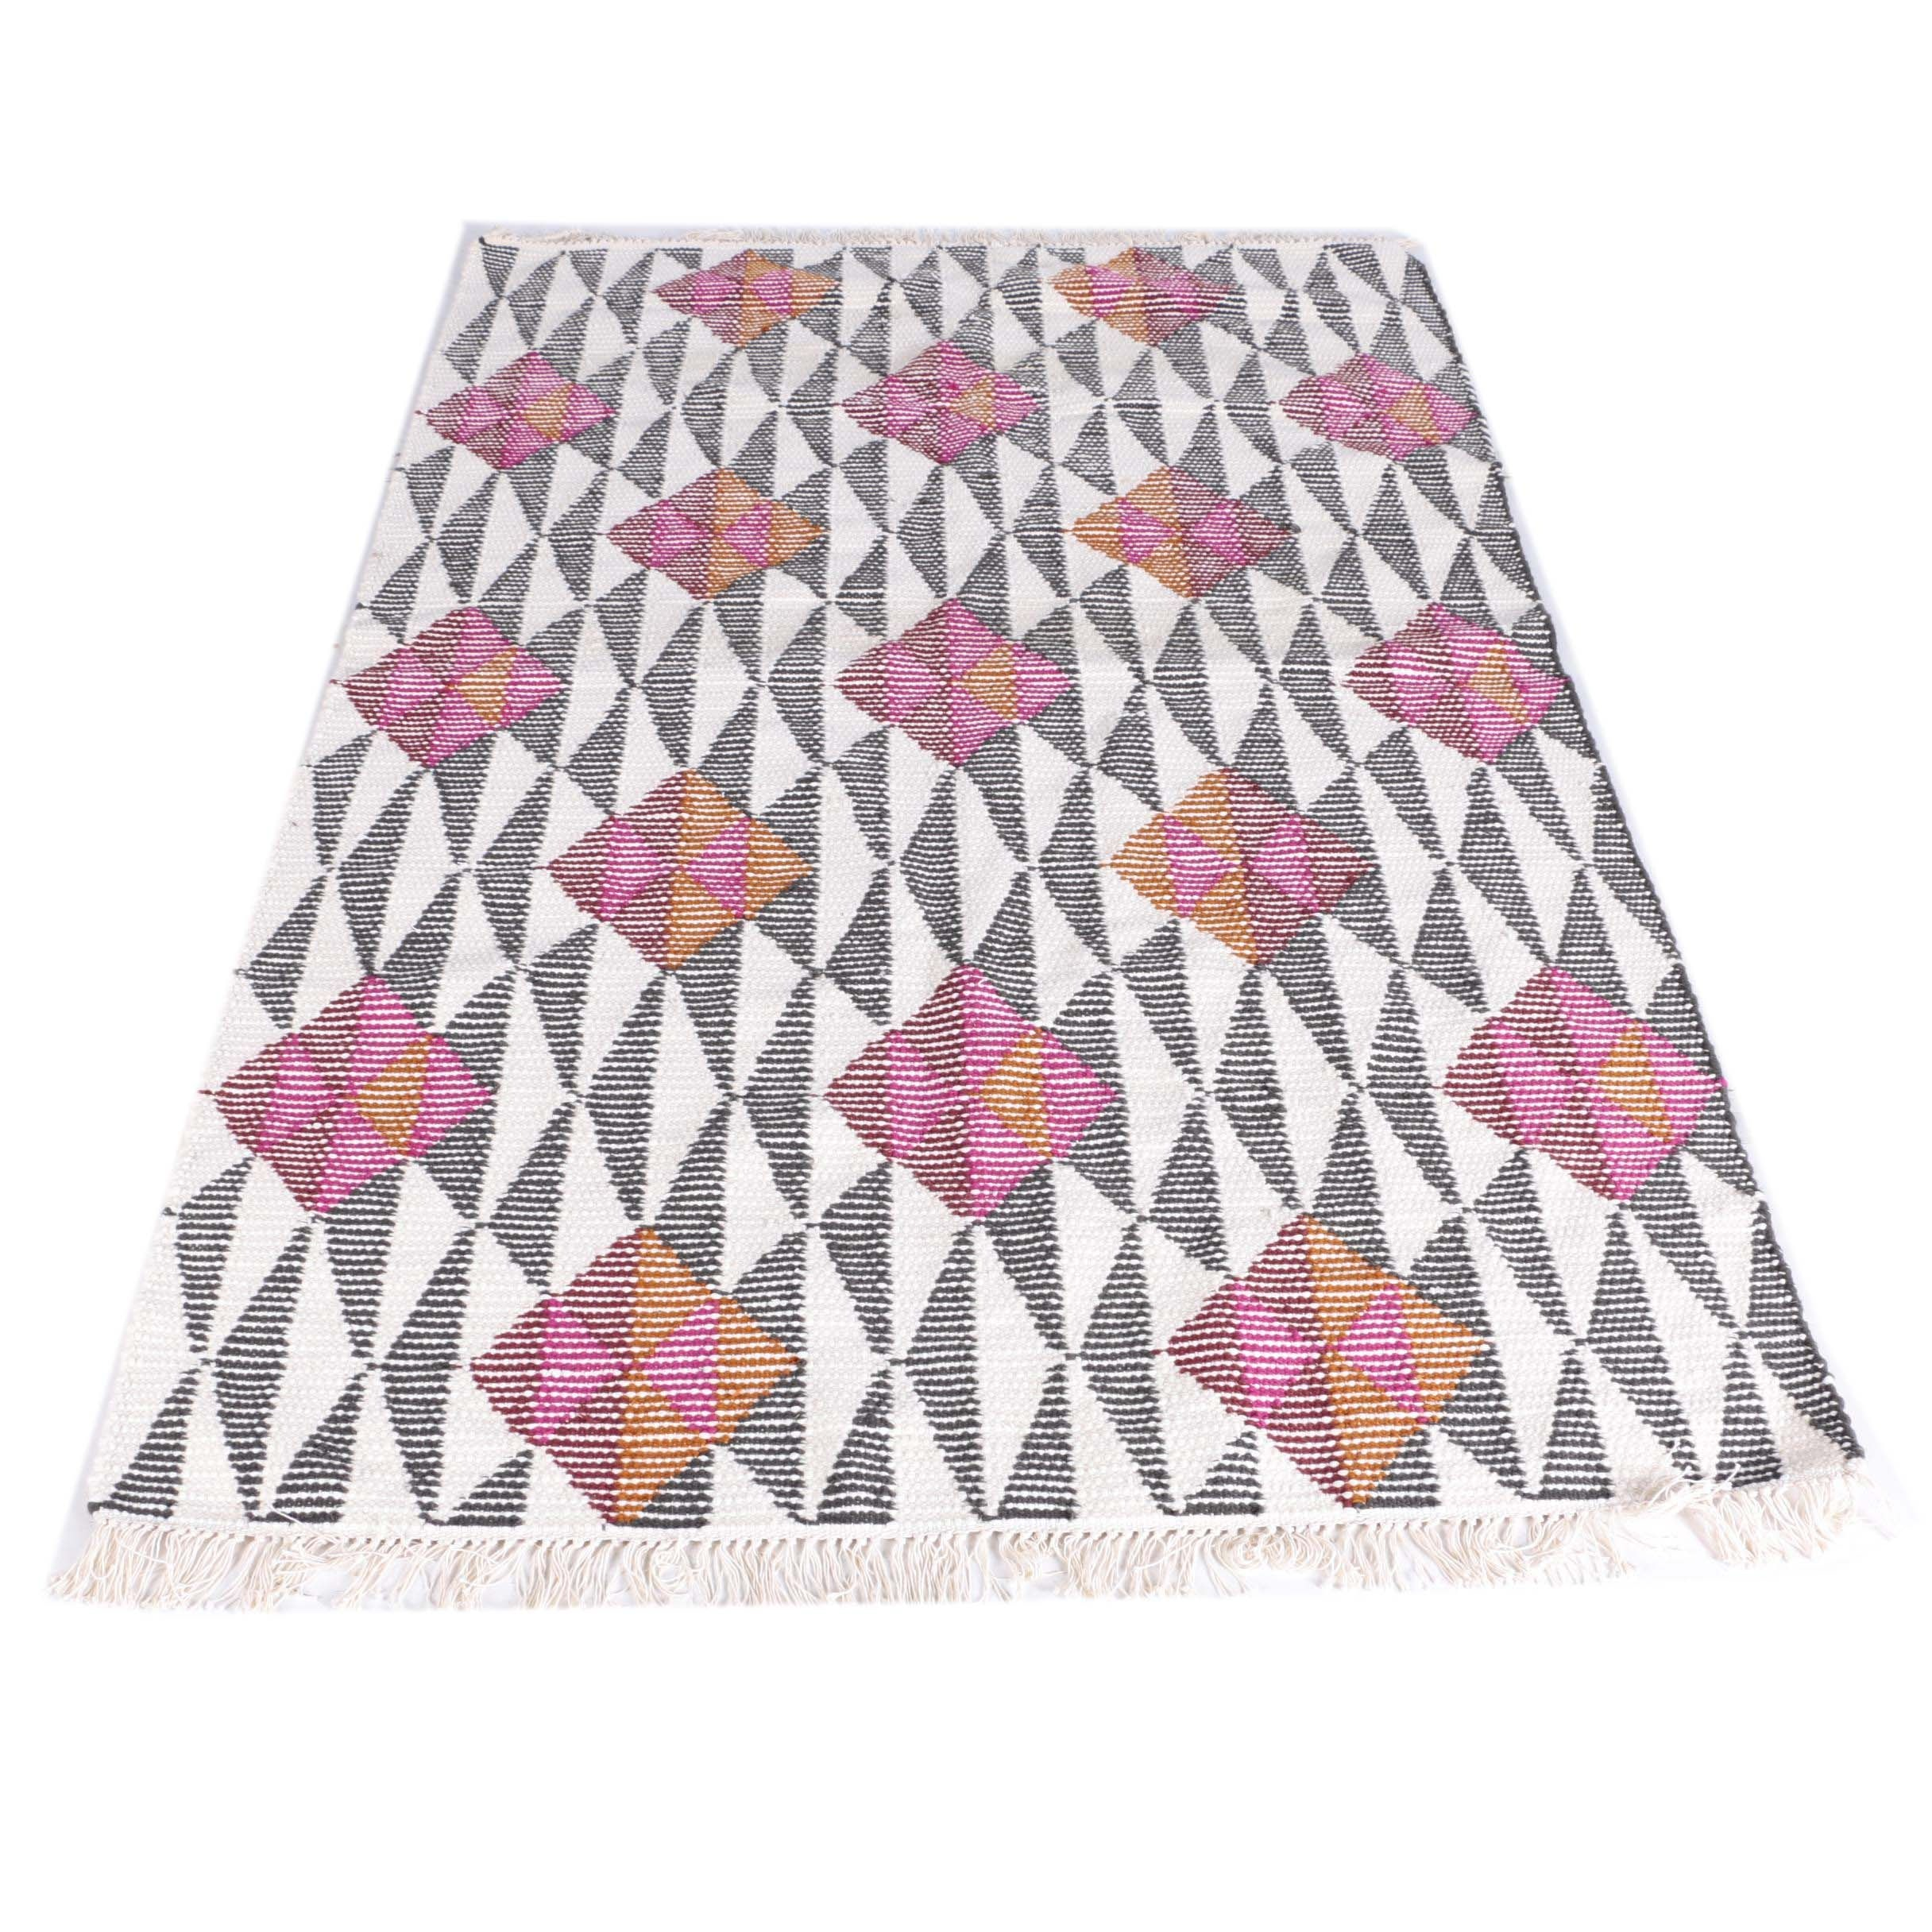 Handwoven Indian Wool and Cotton Area Rug